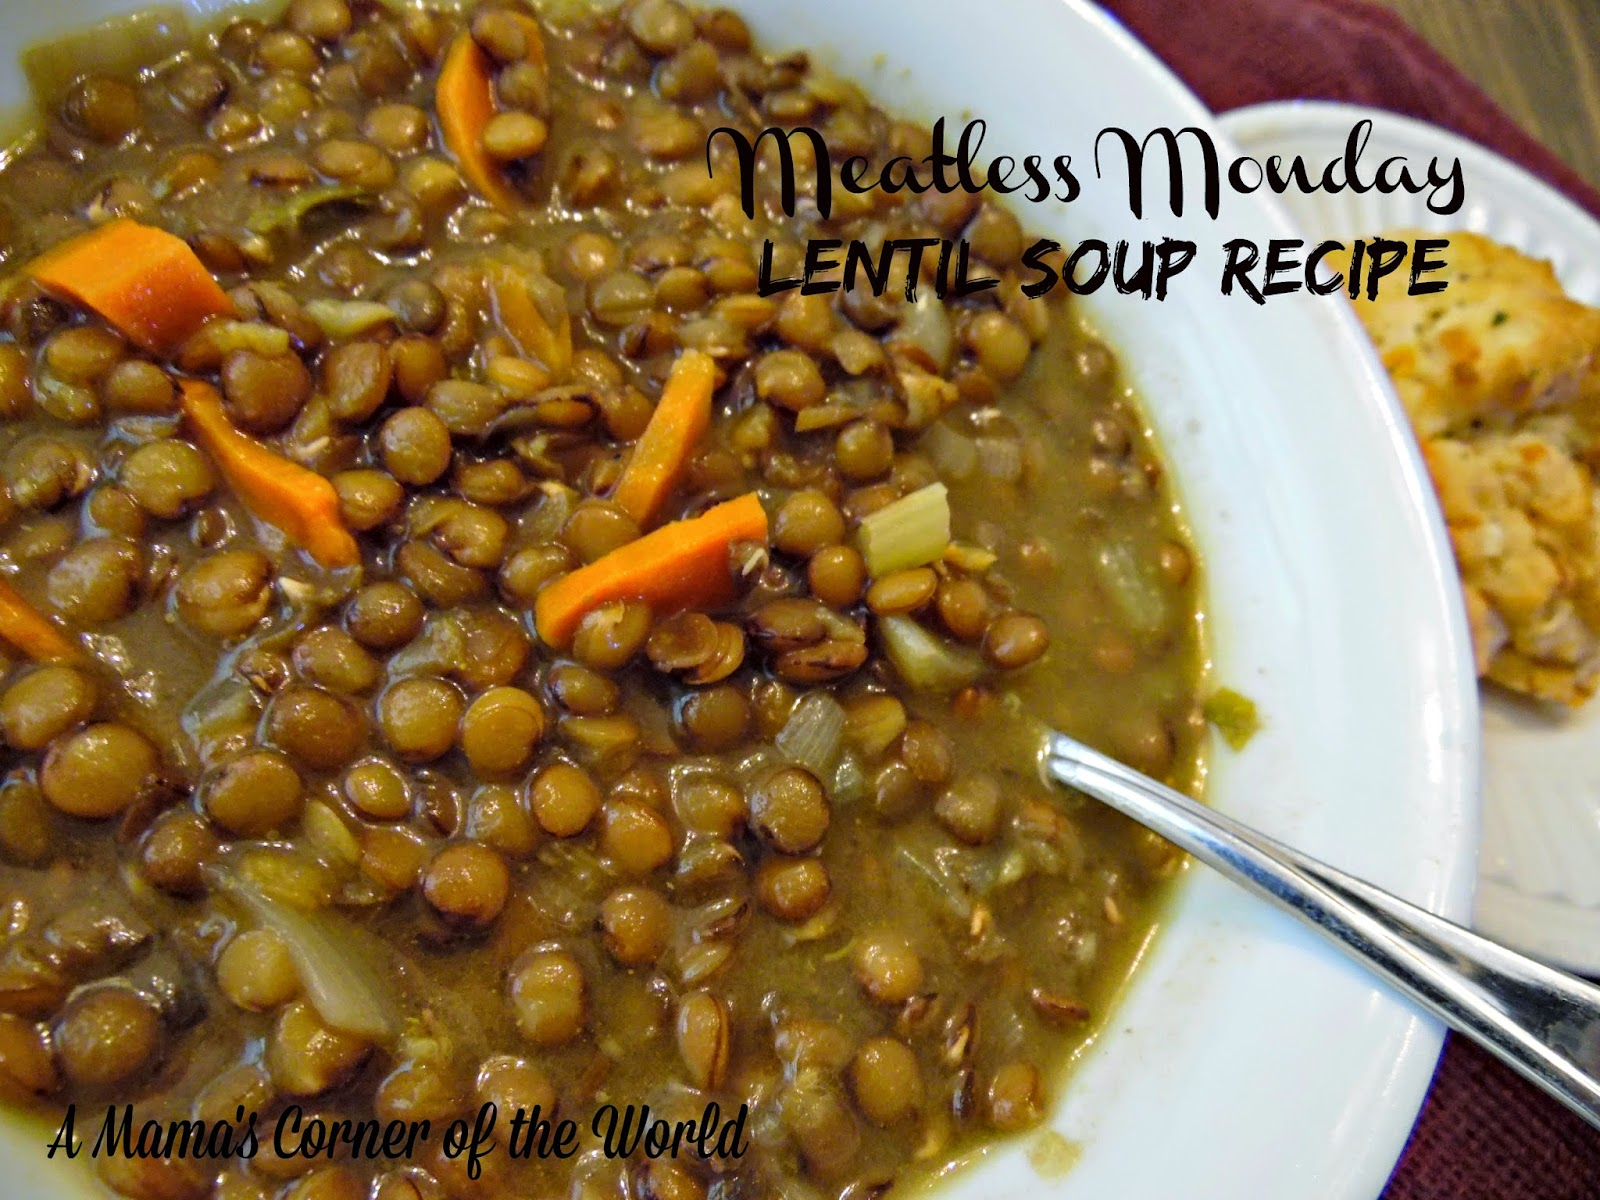 Homemade lentil soup with bread